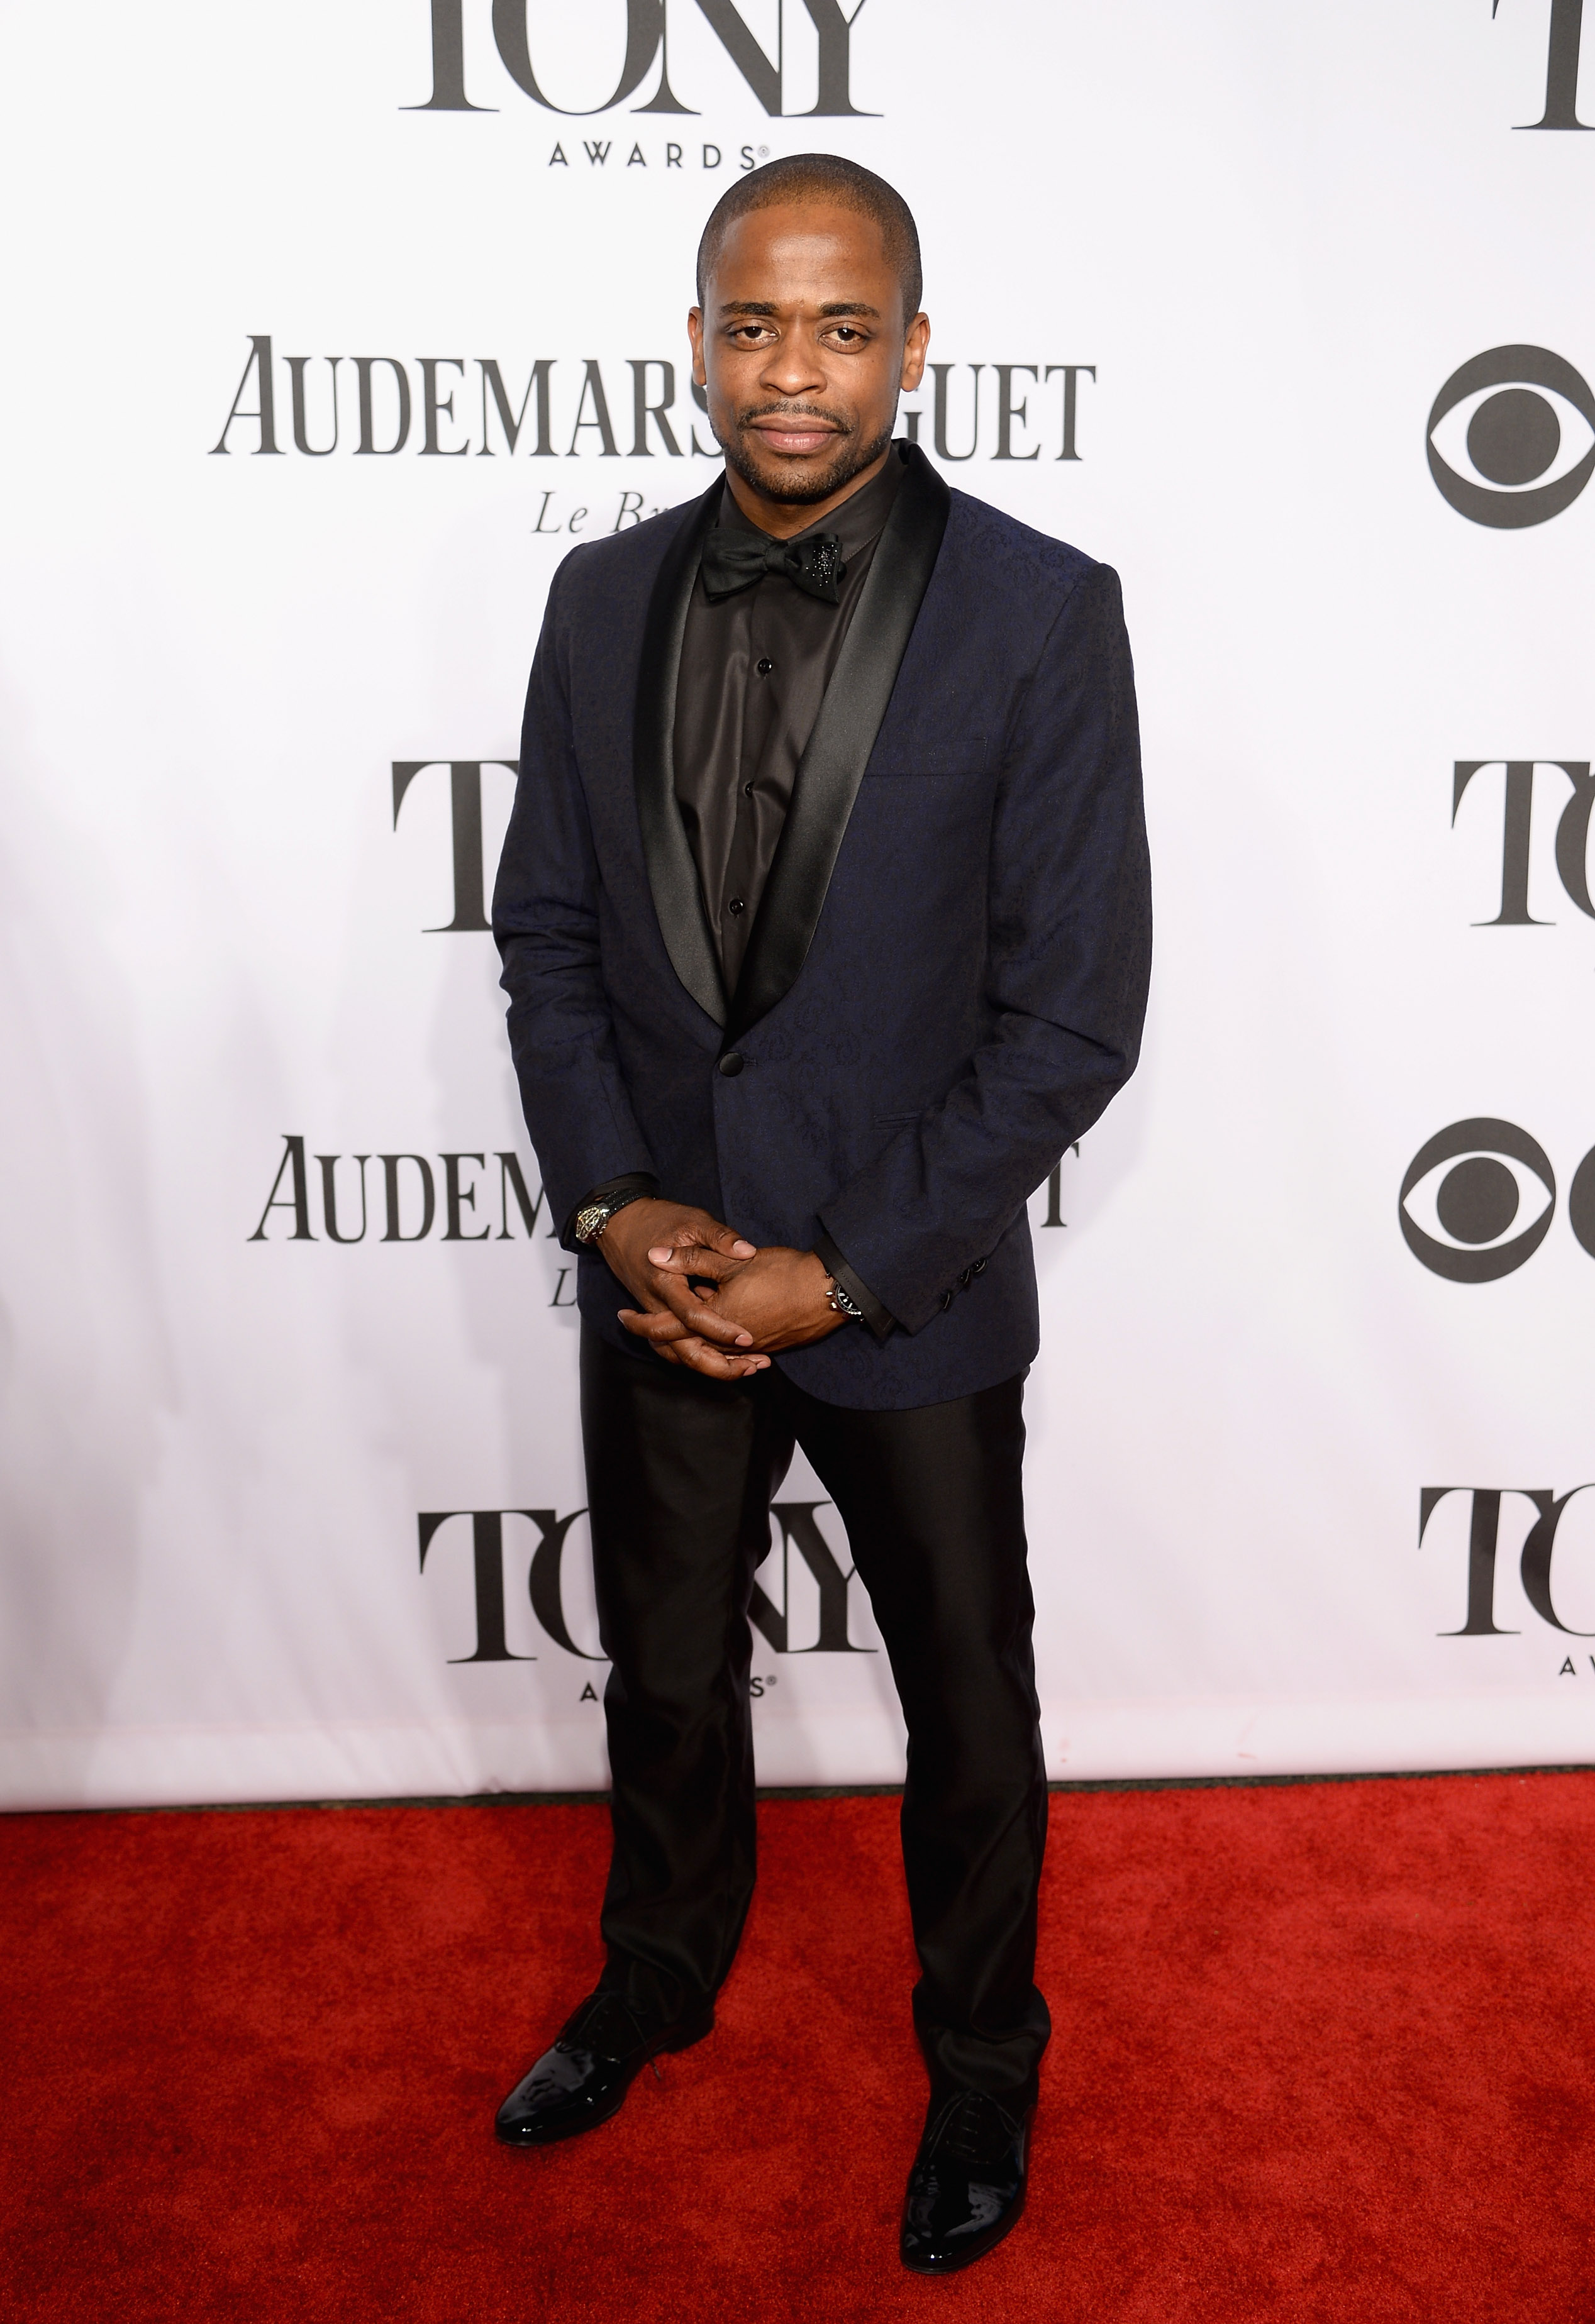 Actor Dule Hill attends the 68th Annual Tony Awards at Radio City Music Hall on June 8.